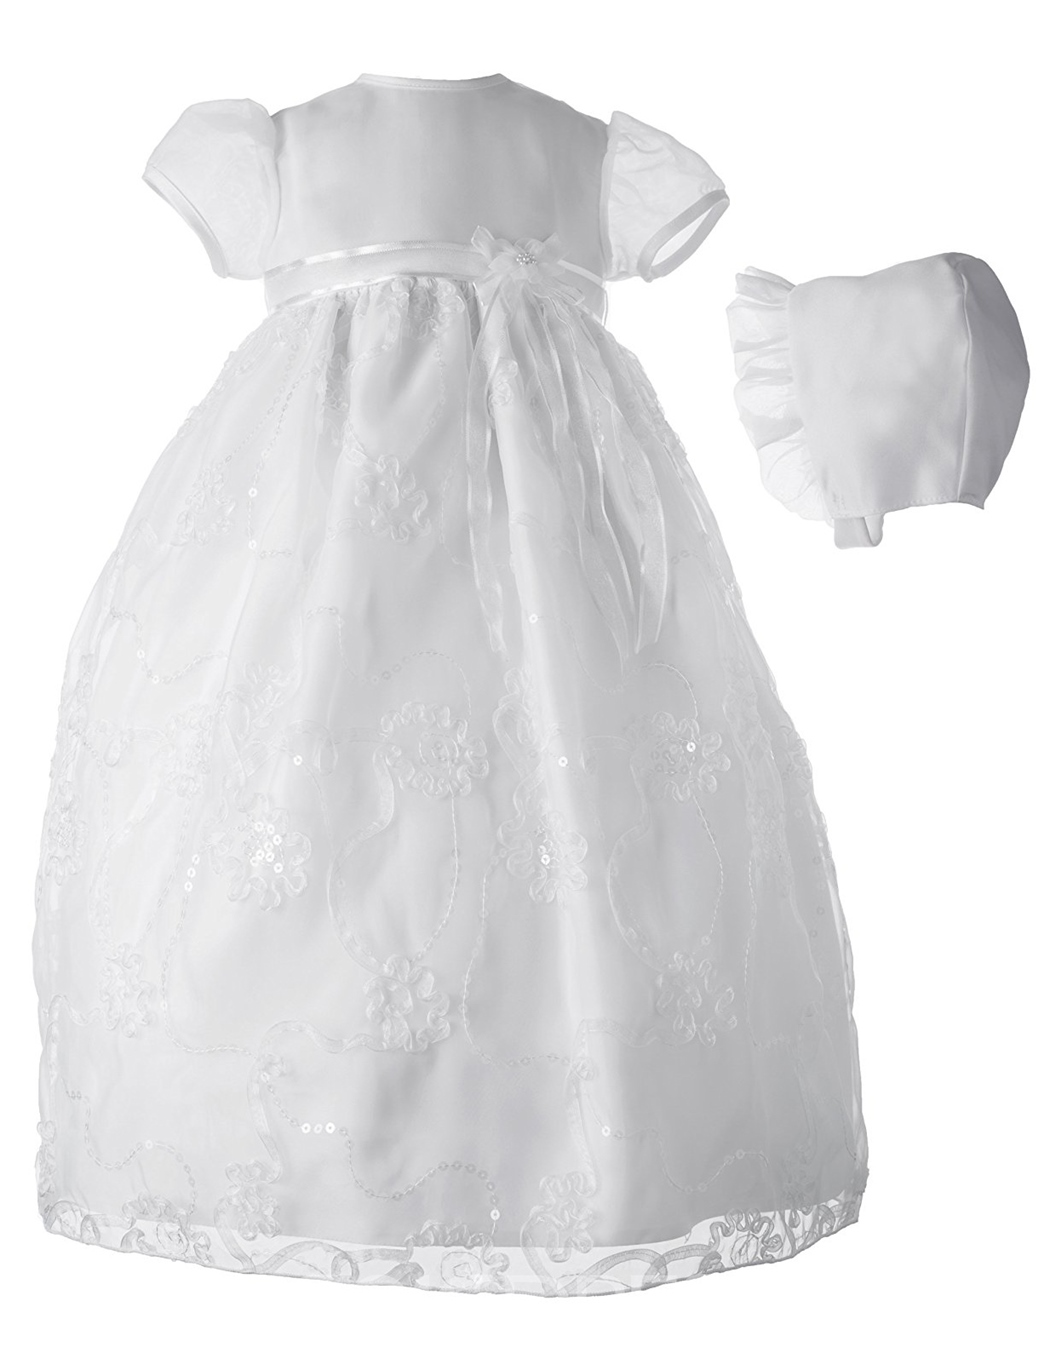 Ericdress Appliques Sequins Bonnet Infant Baby Girls Christening Gown